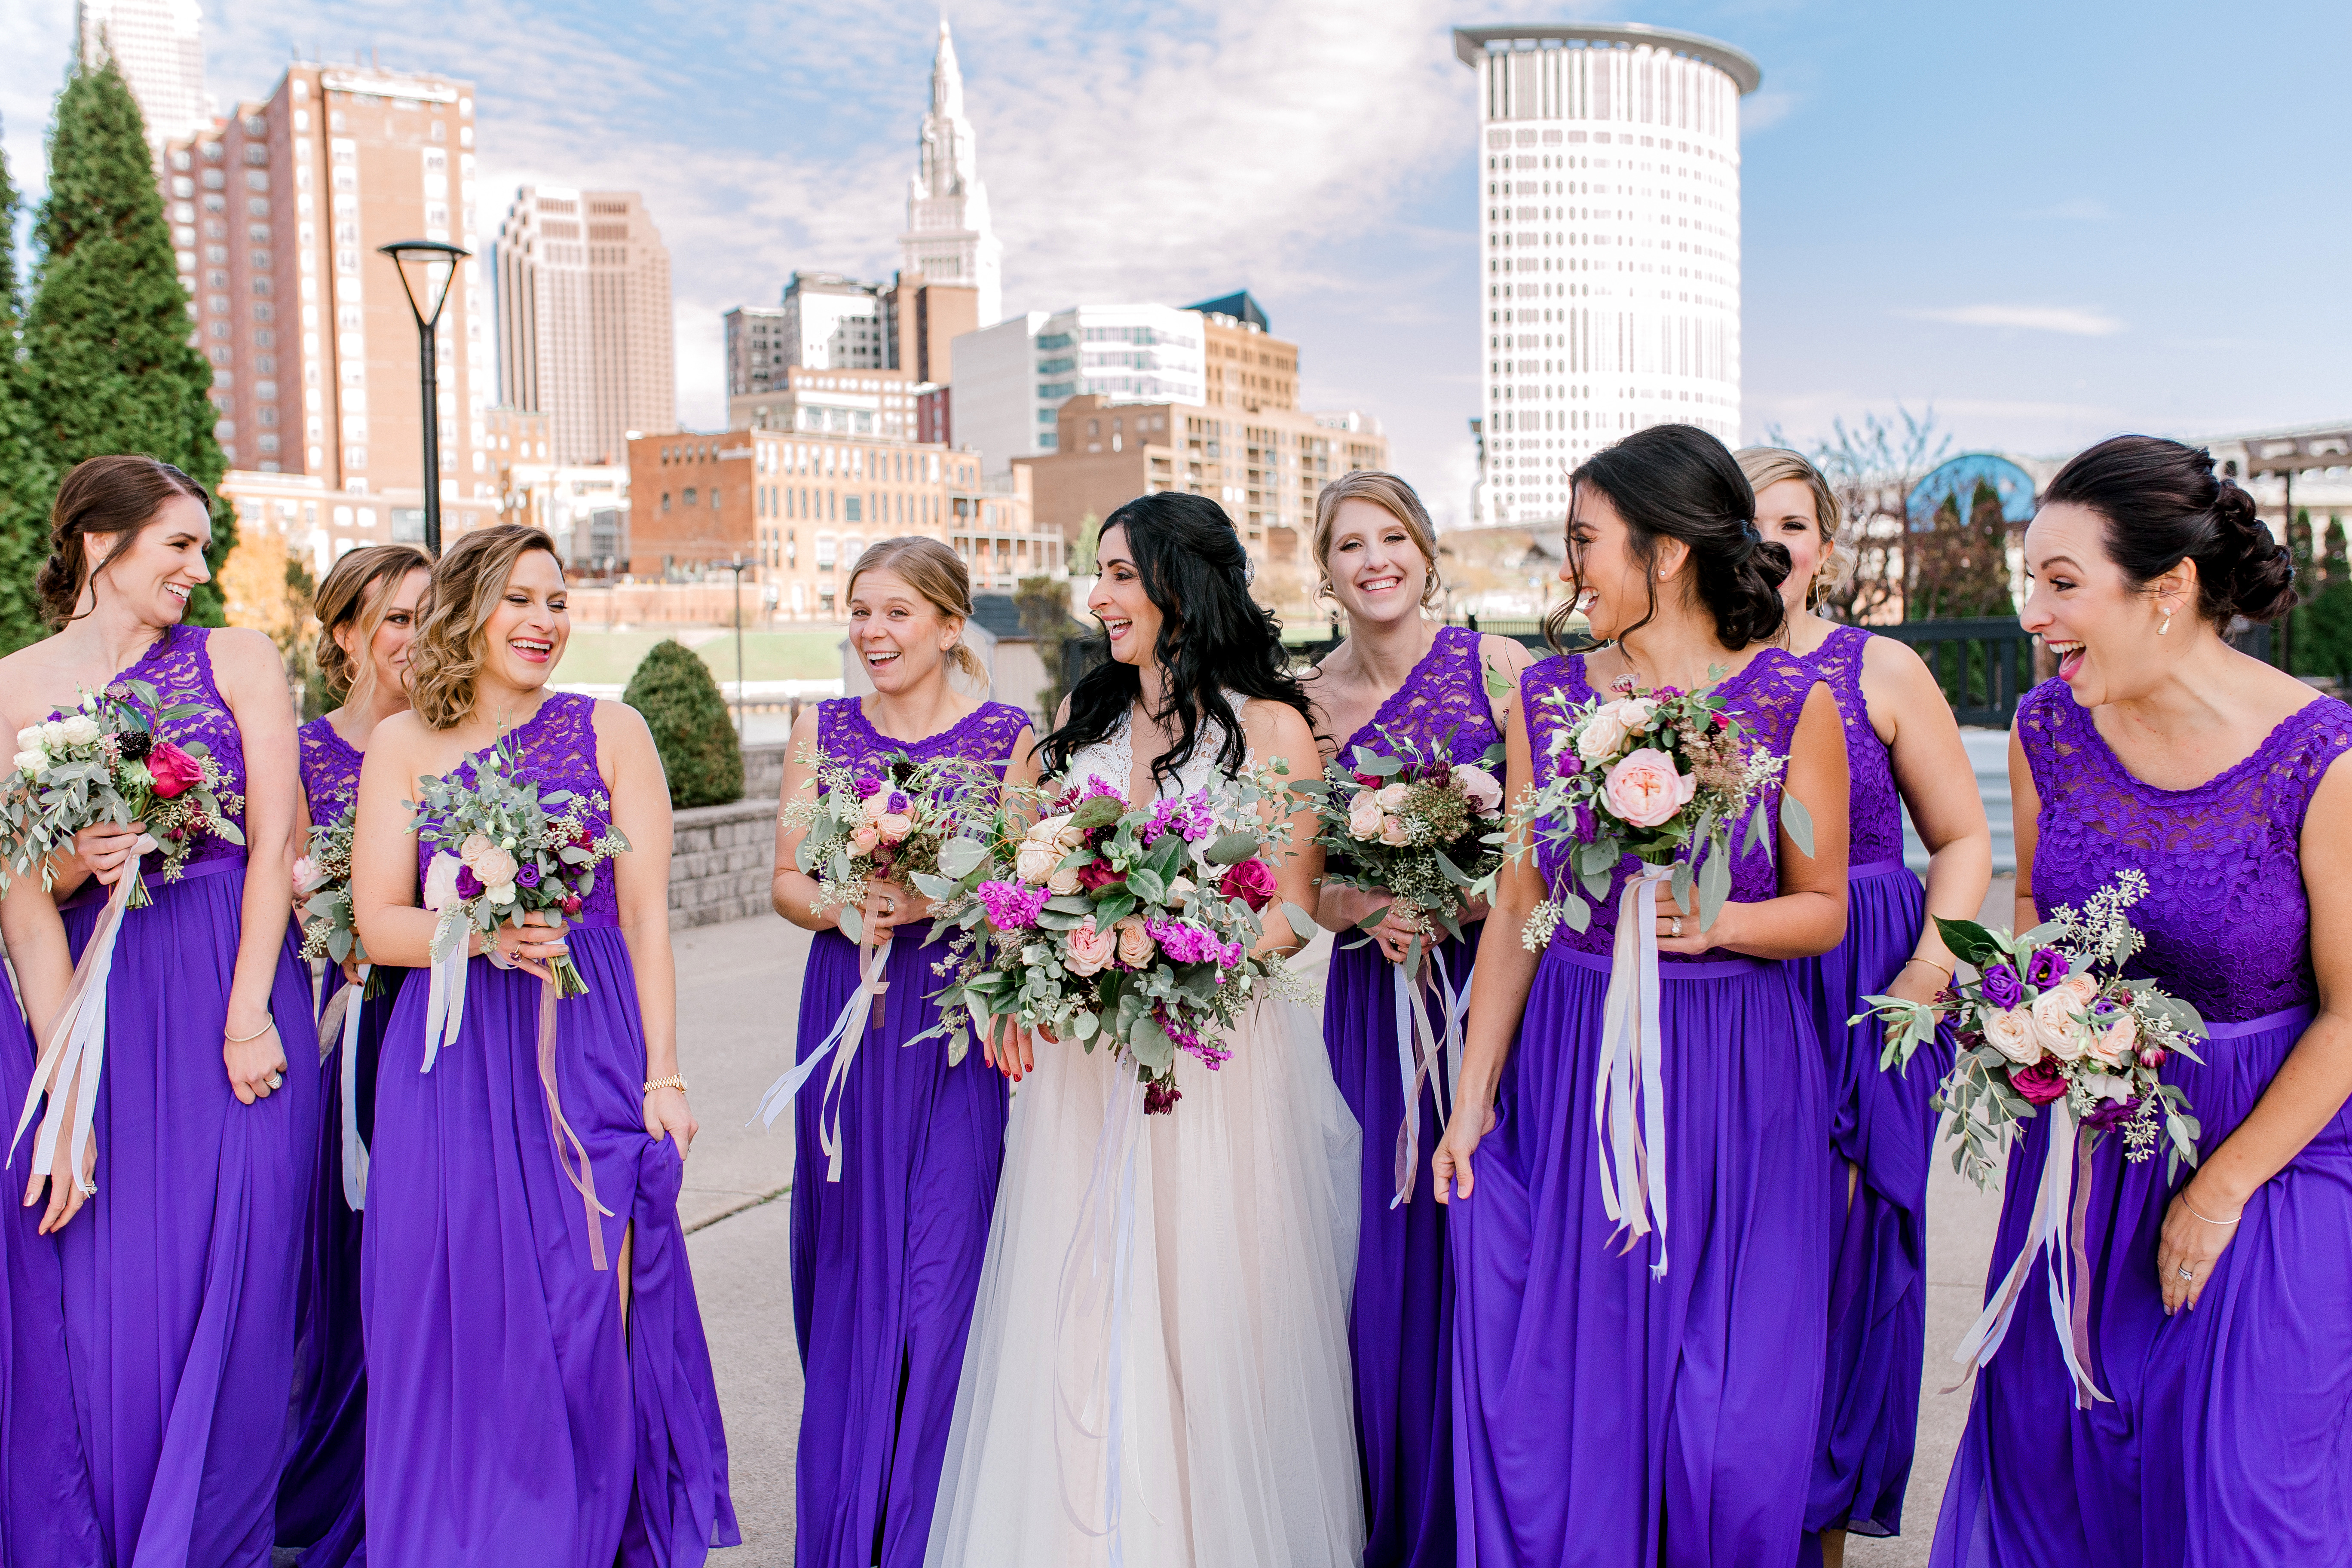 The bride accompanied by her gorgeous gals along the river in Cleveland! Photo by: Marissa Camino Photography